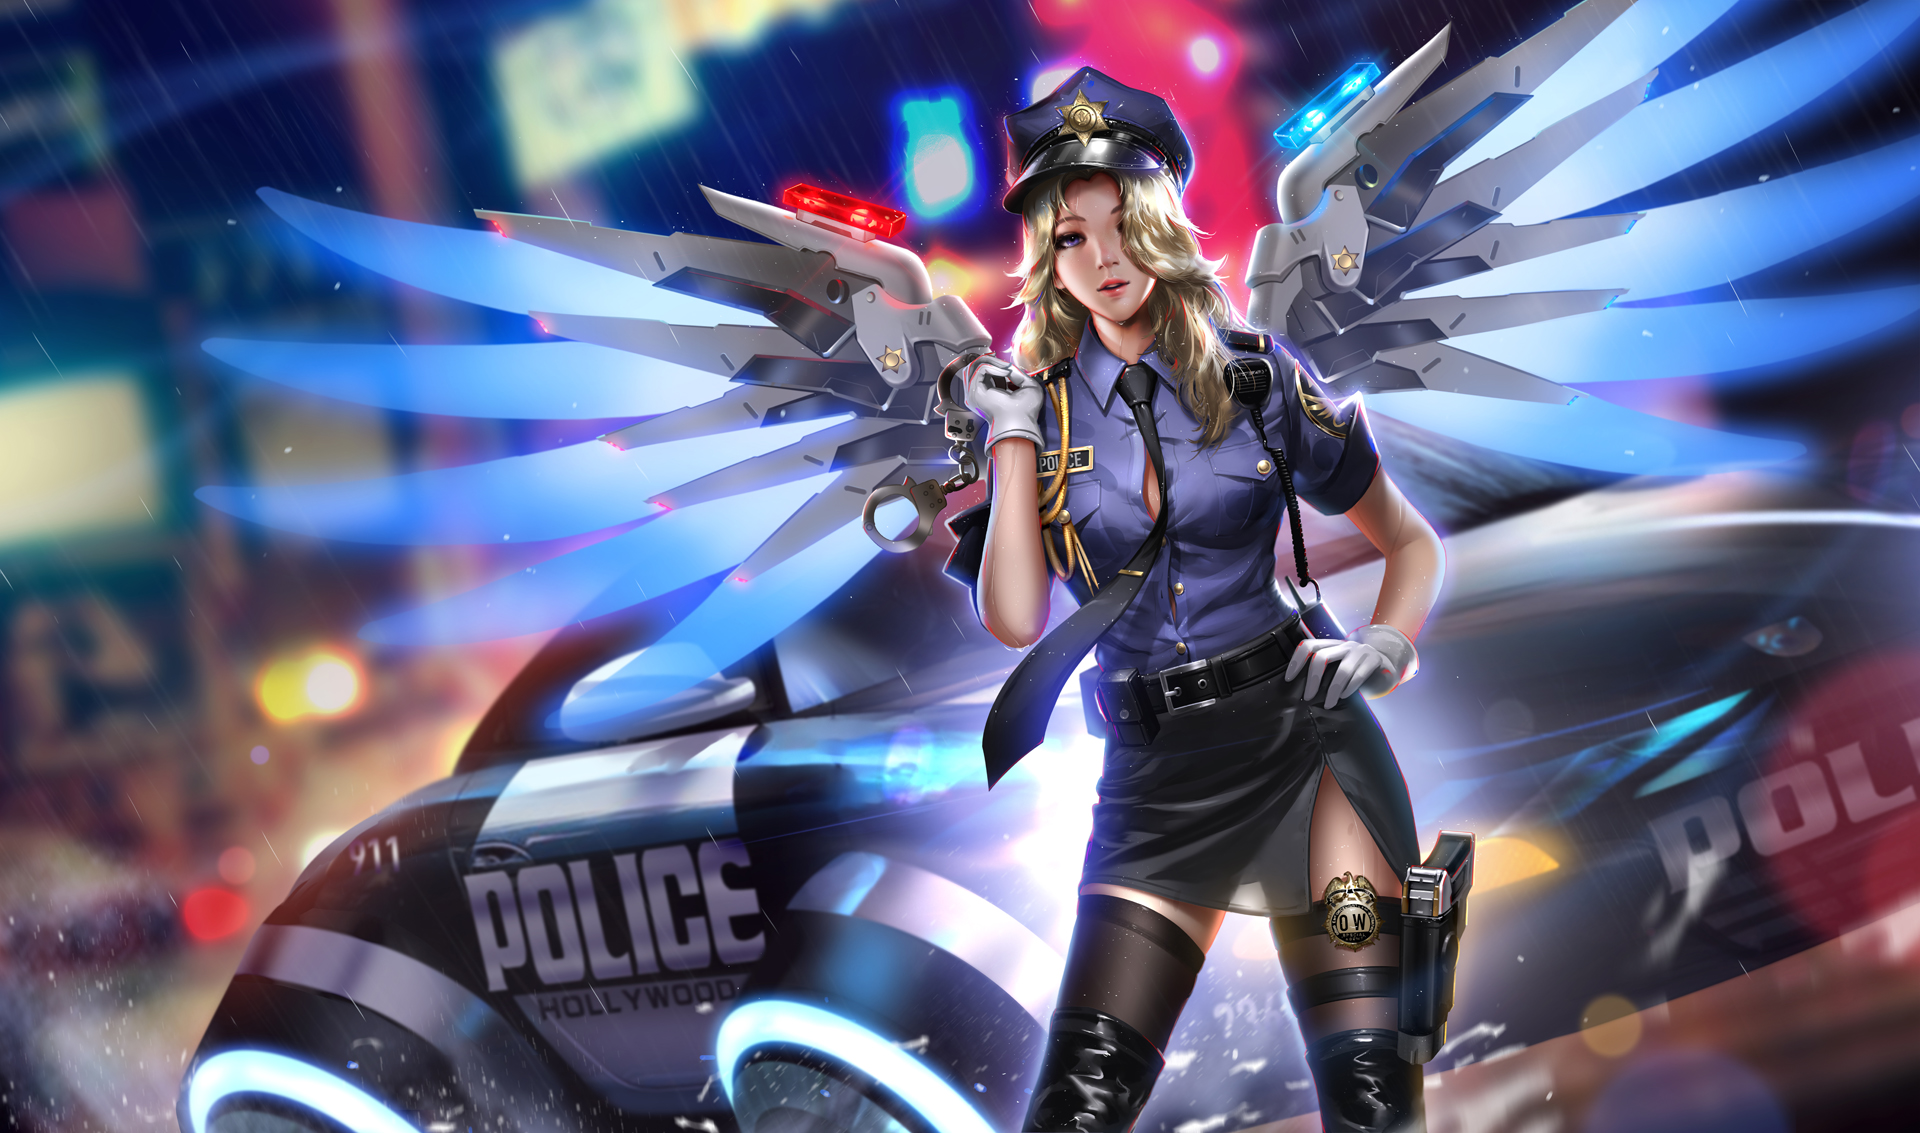 Police Girl Mercy Overwatch 2018 Hd, Hd Games, 4K Wallpapers, Images, Backgrounds -1725